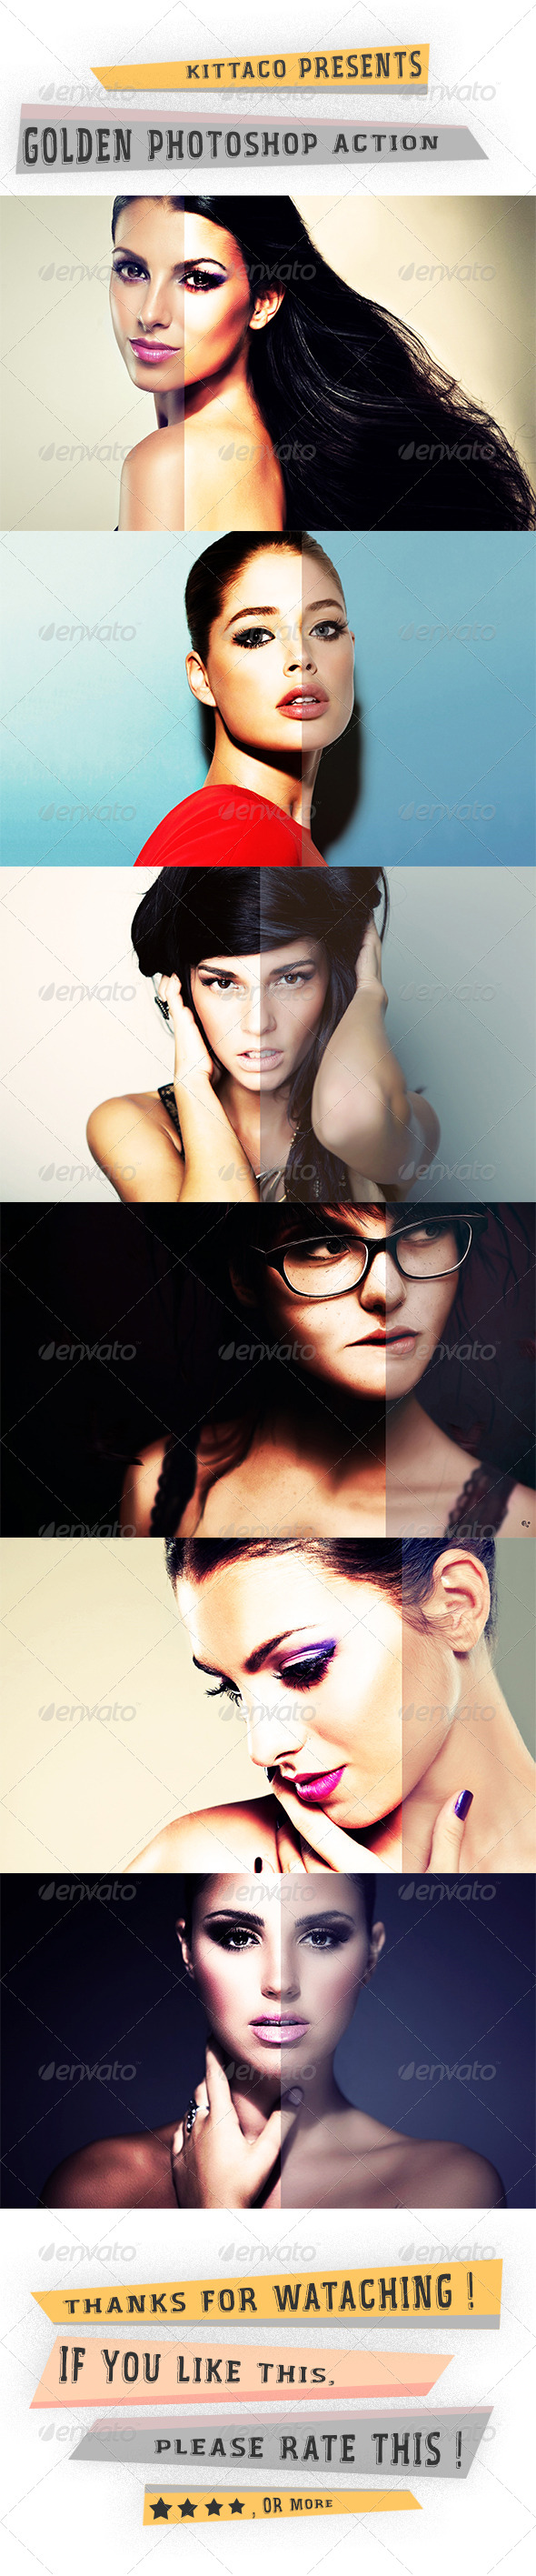 GraphicRiver Golden Photoshop Action 8179148